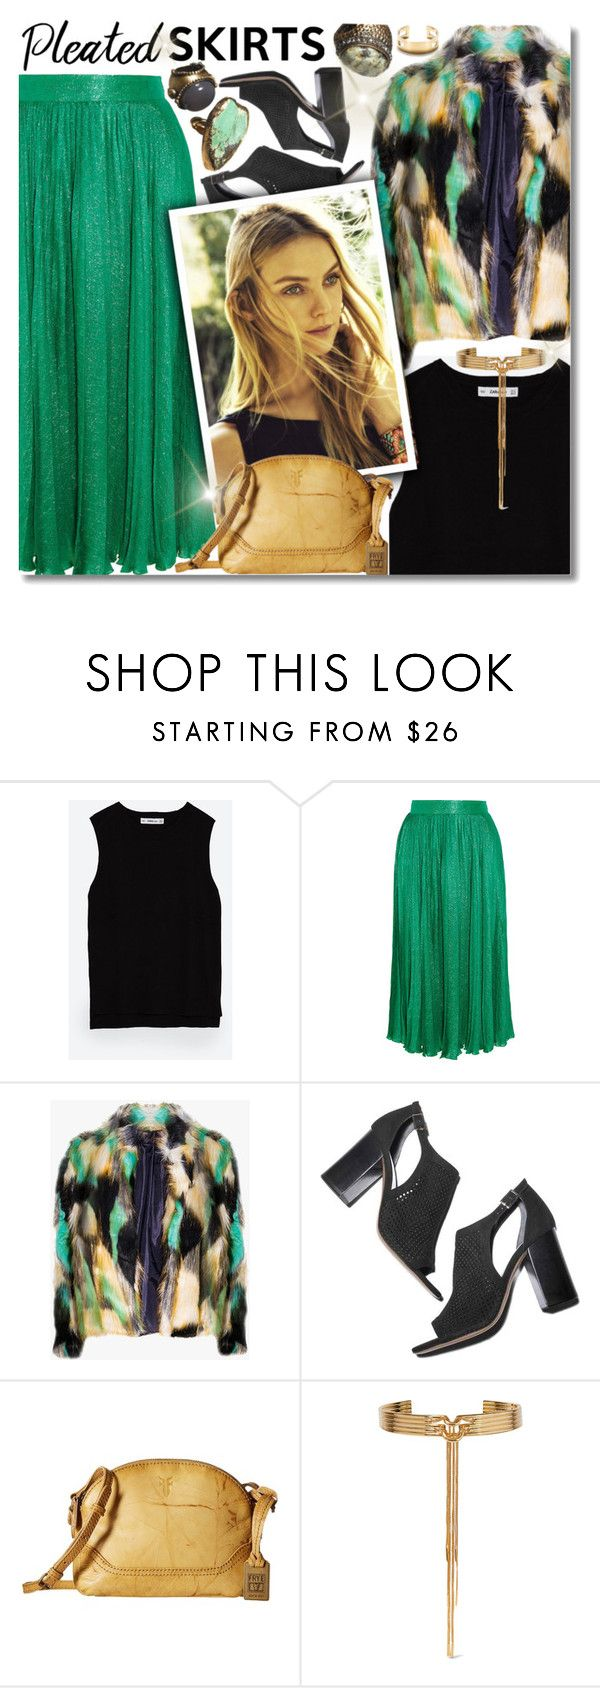 """~Pleated Skirts~"" by amethyst0818 ❤ liked on Polyvore featuring Zara, Gucci, ADAM, Frye, Eddie Borgo and Tiffany & Co."